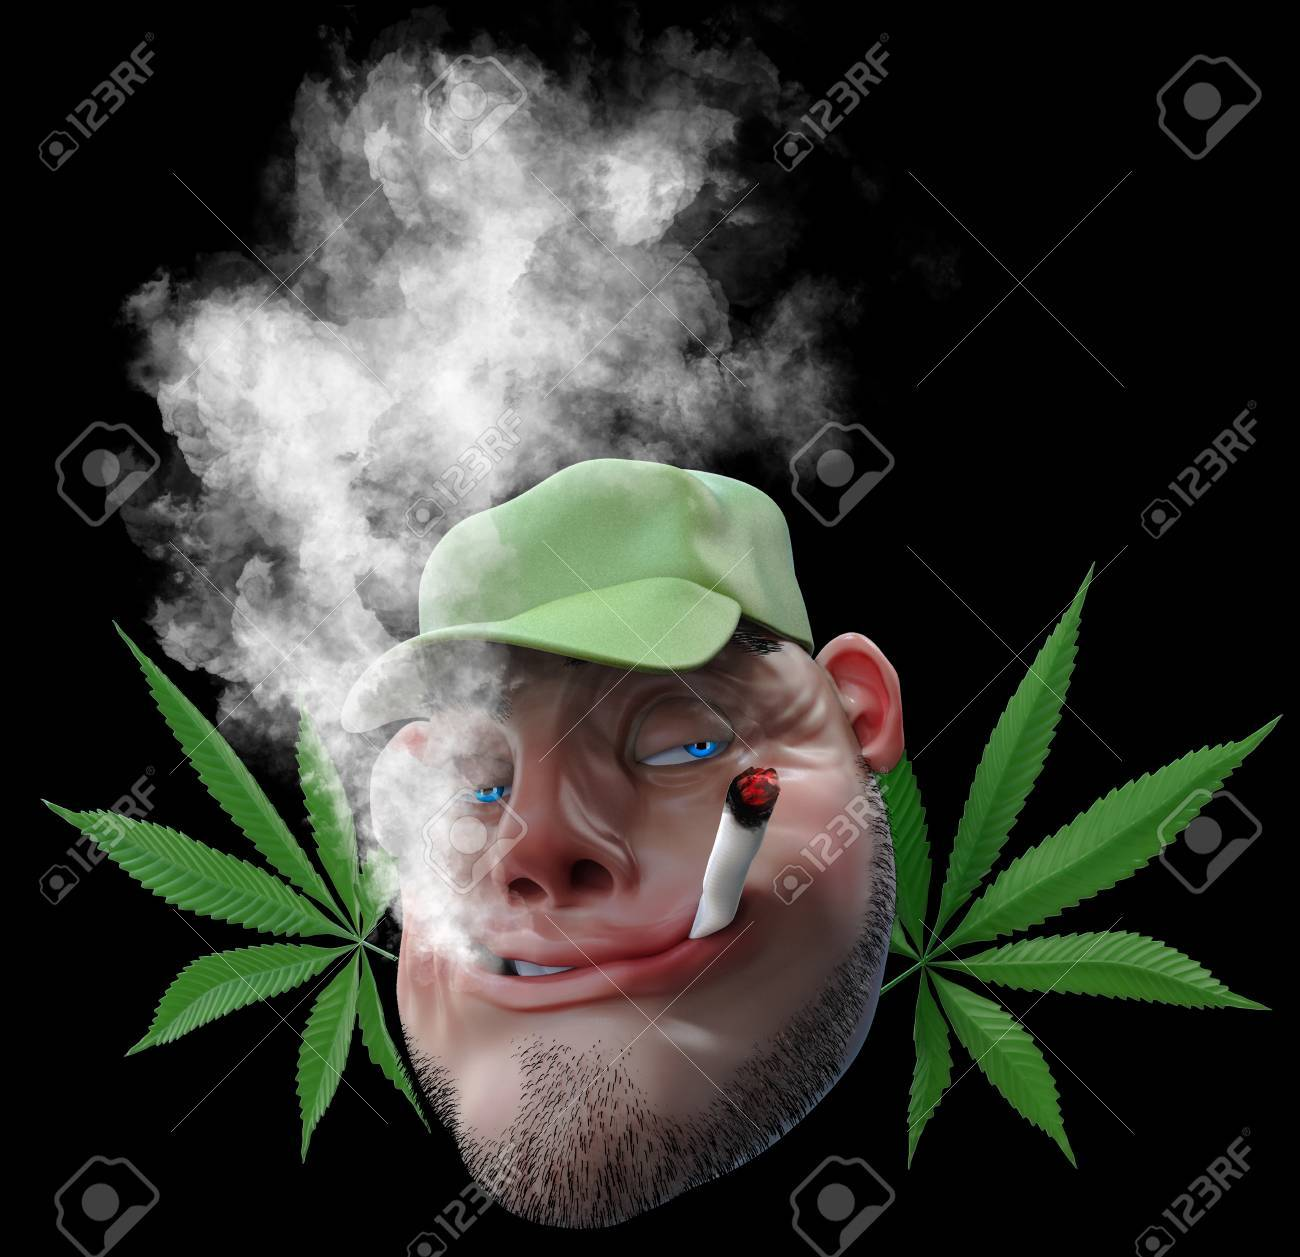 Cartoon Man Smoking Weed Joint 3d Illustration Isolated On Black Stock Photo Picture And Royalty Free Image Image 75248997